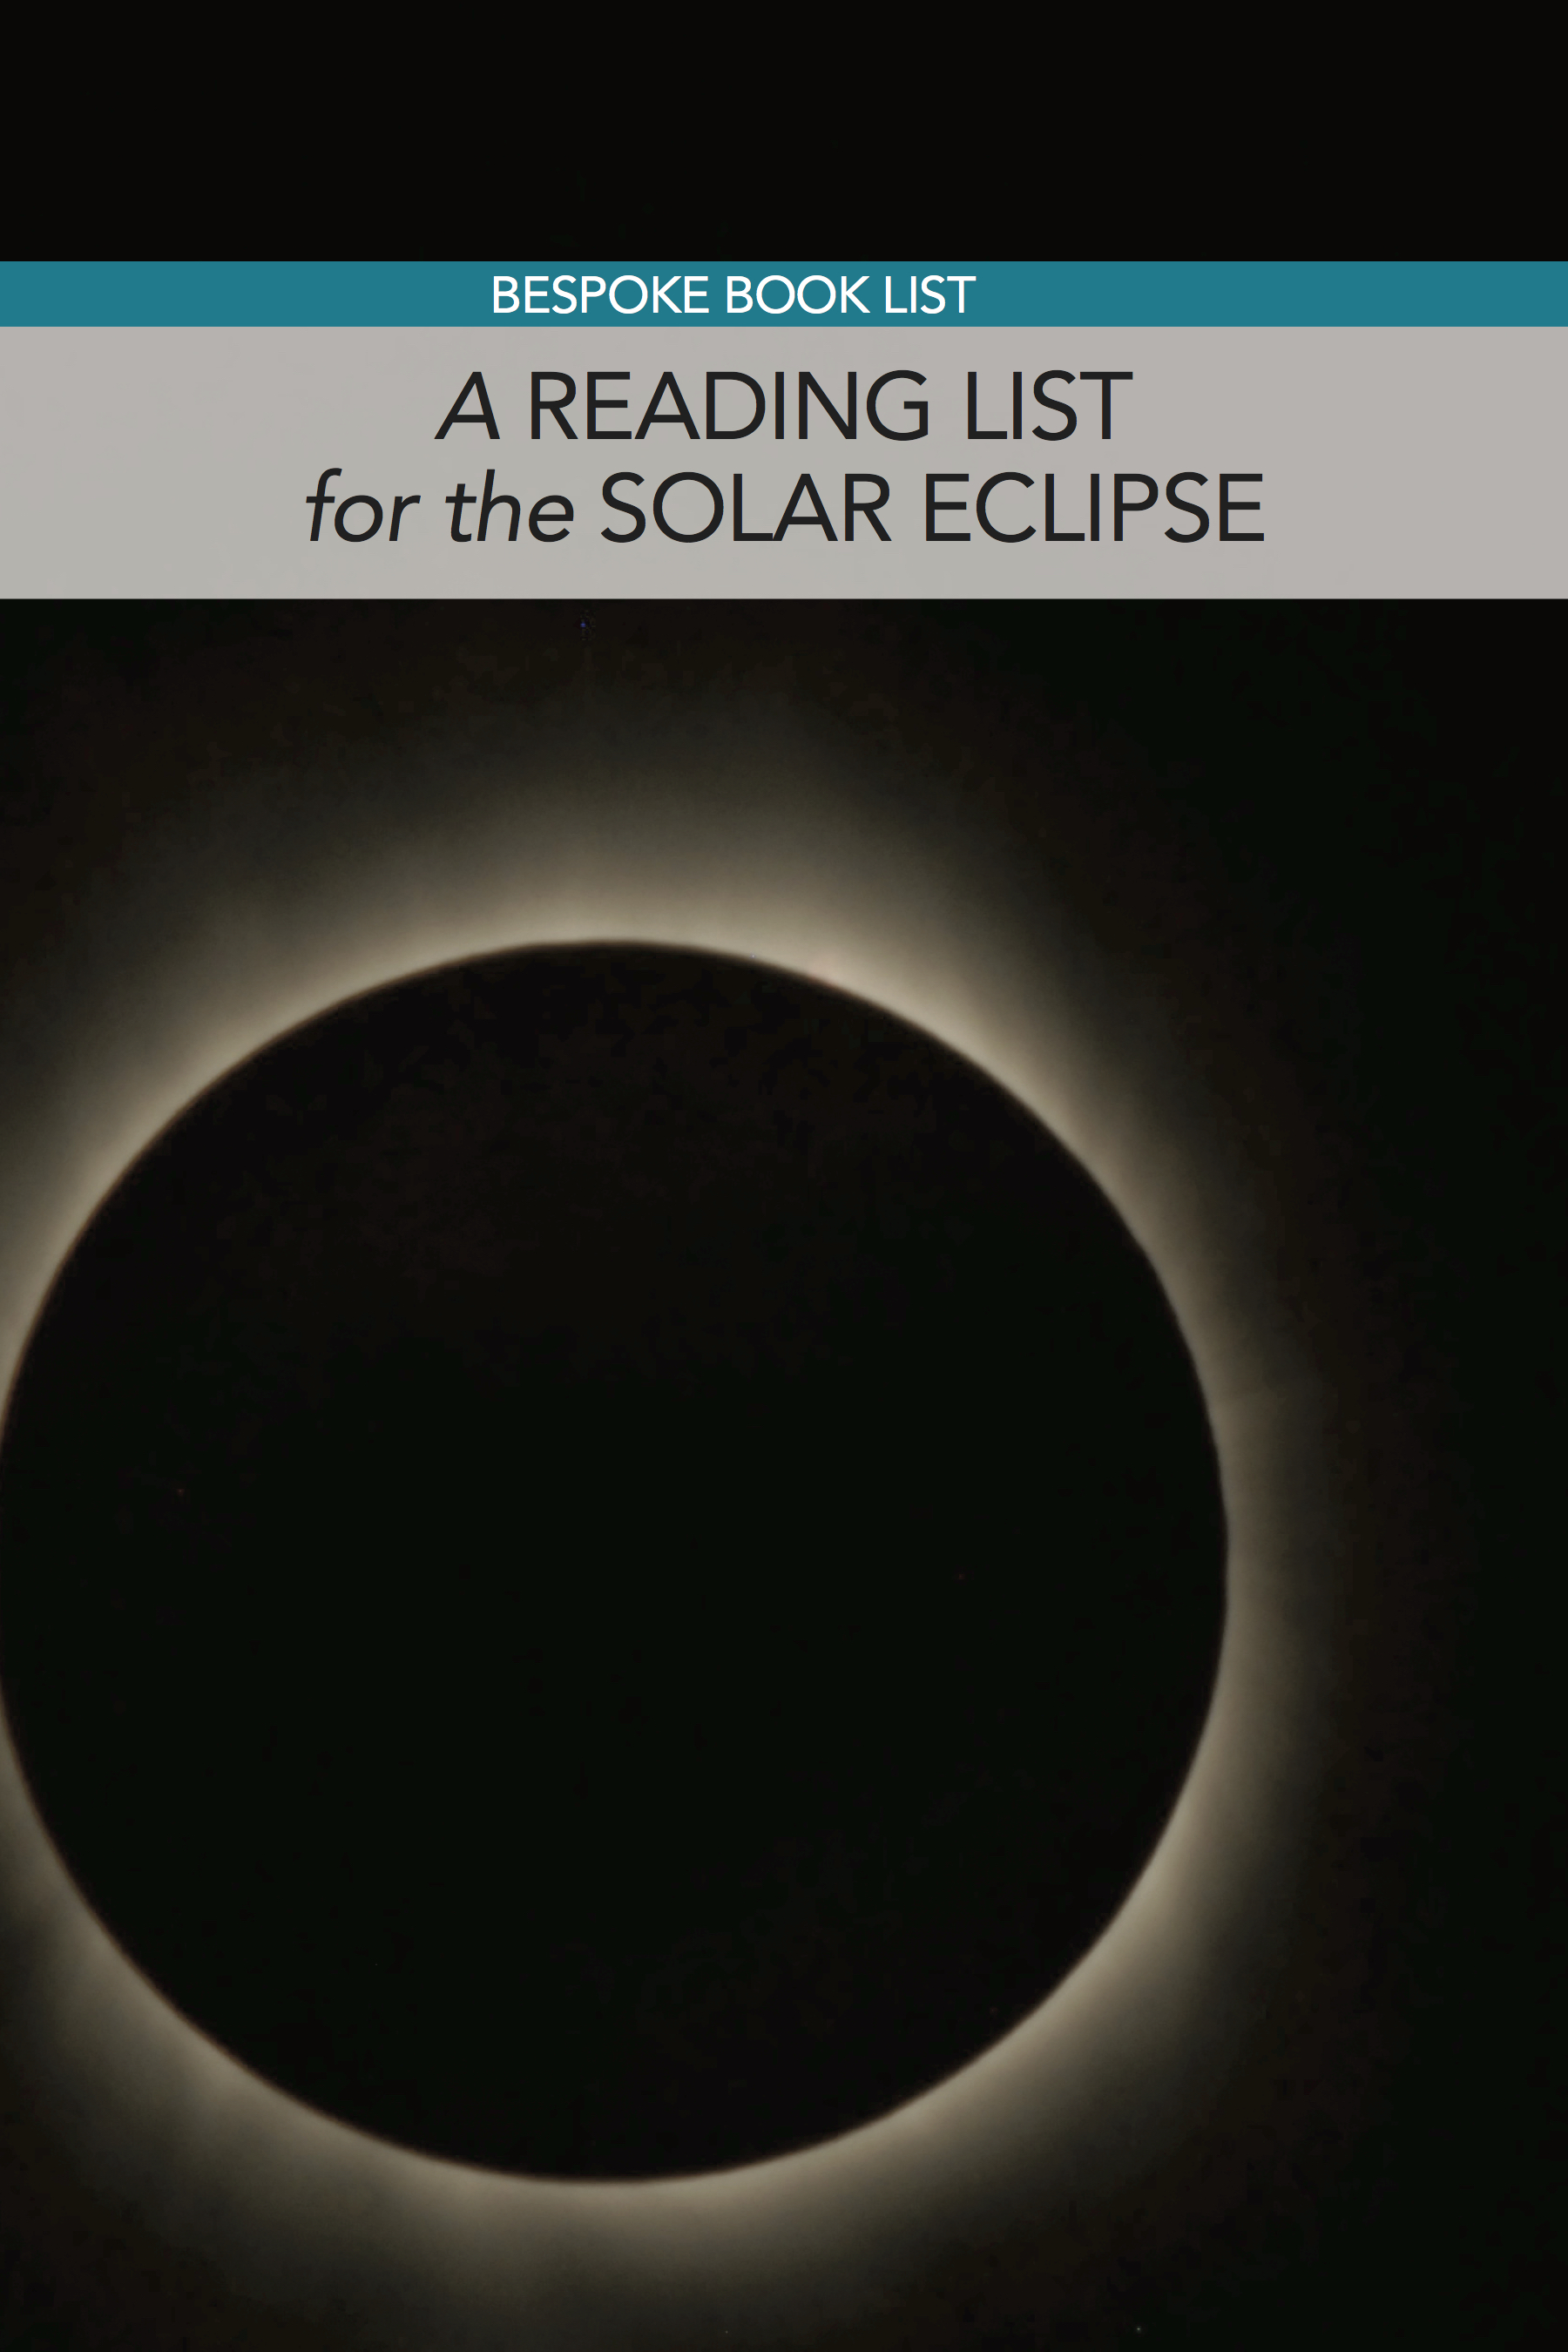 Bespoke Book List: Books about the Solar Eclipse